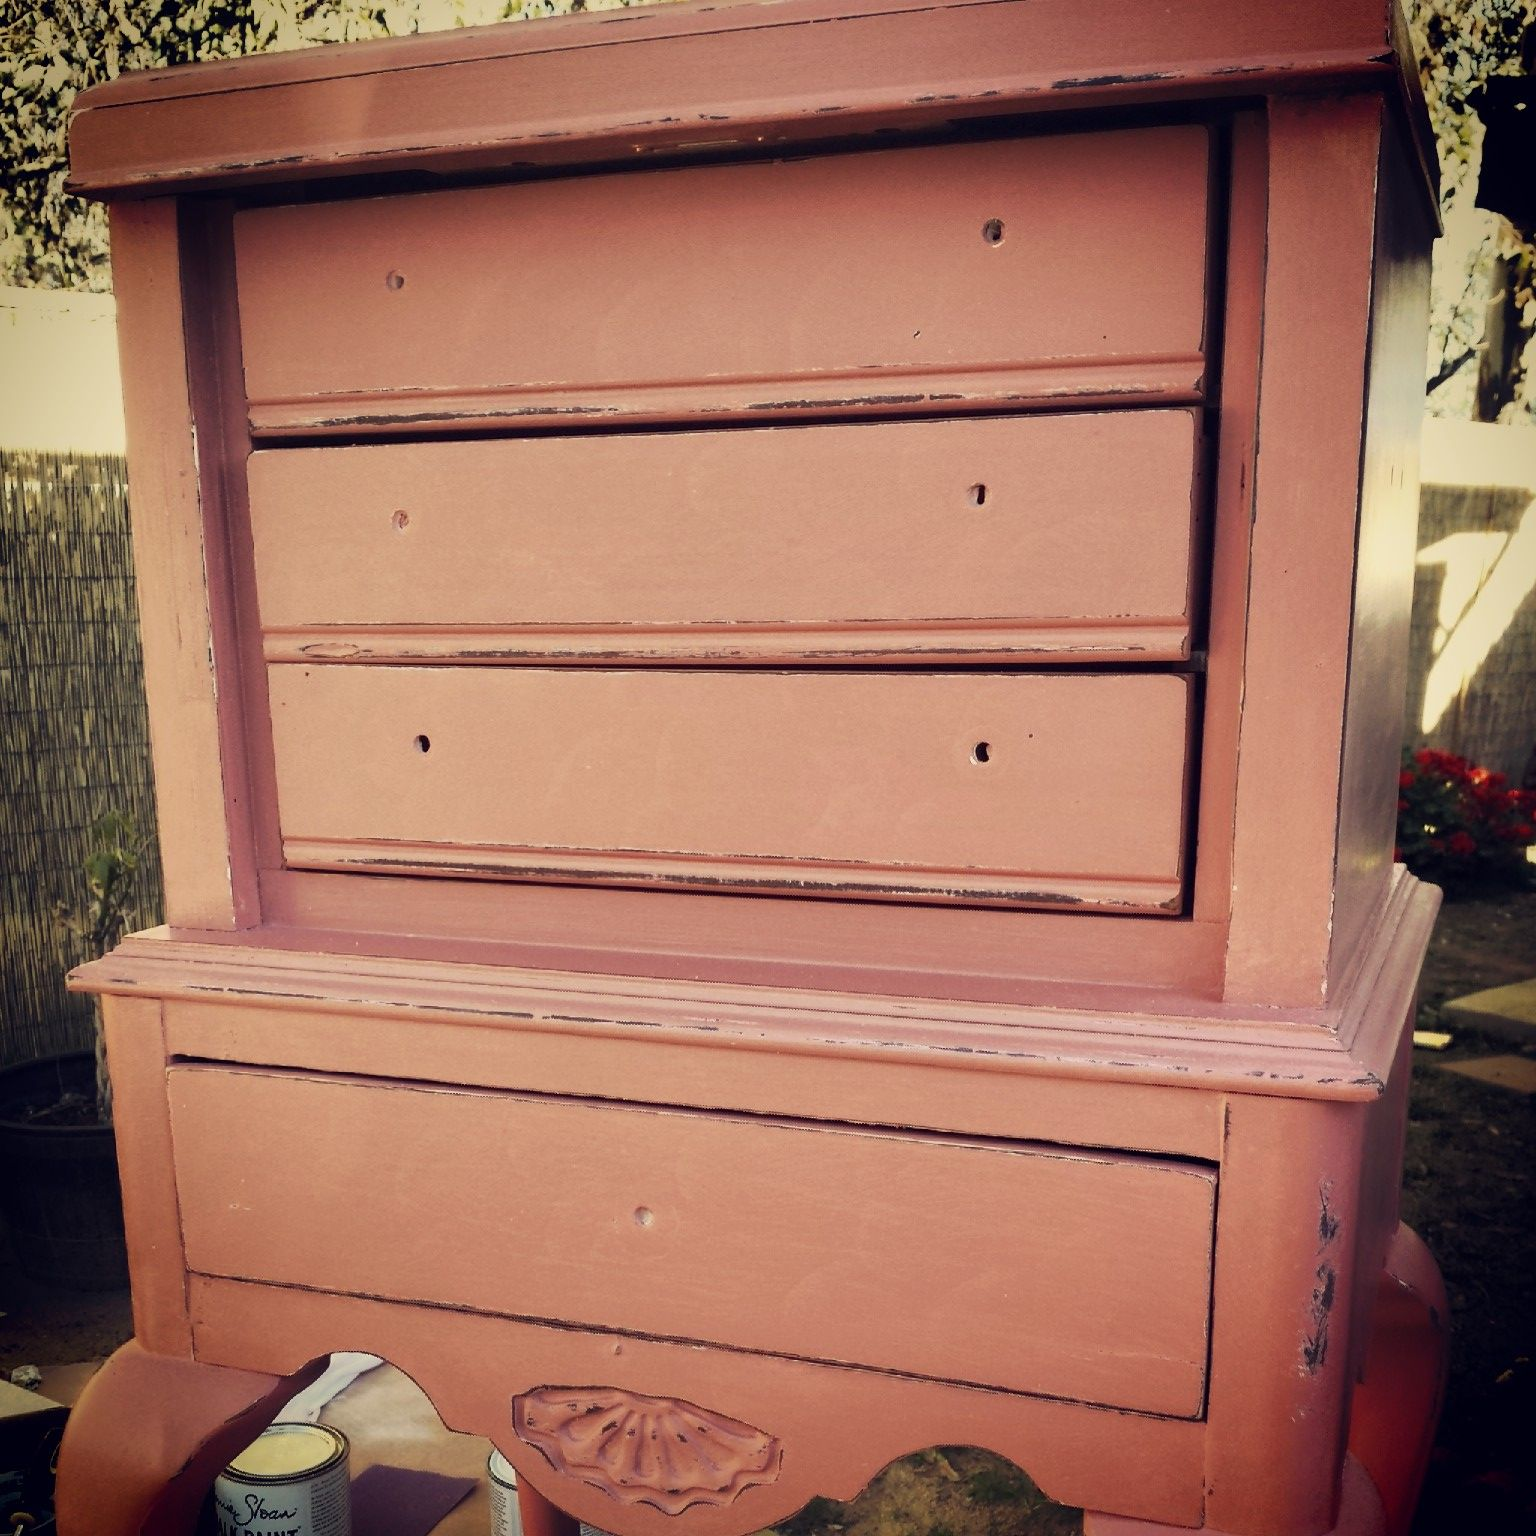 Painted with Annie Sloan Chalk Paint in Scandinavian Pink. Distressed and waxed with clear and dark.